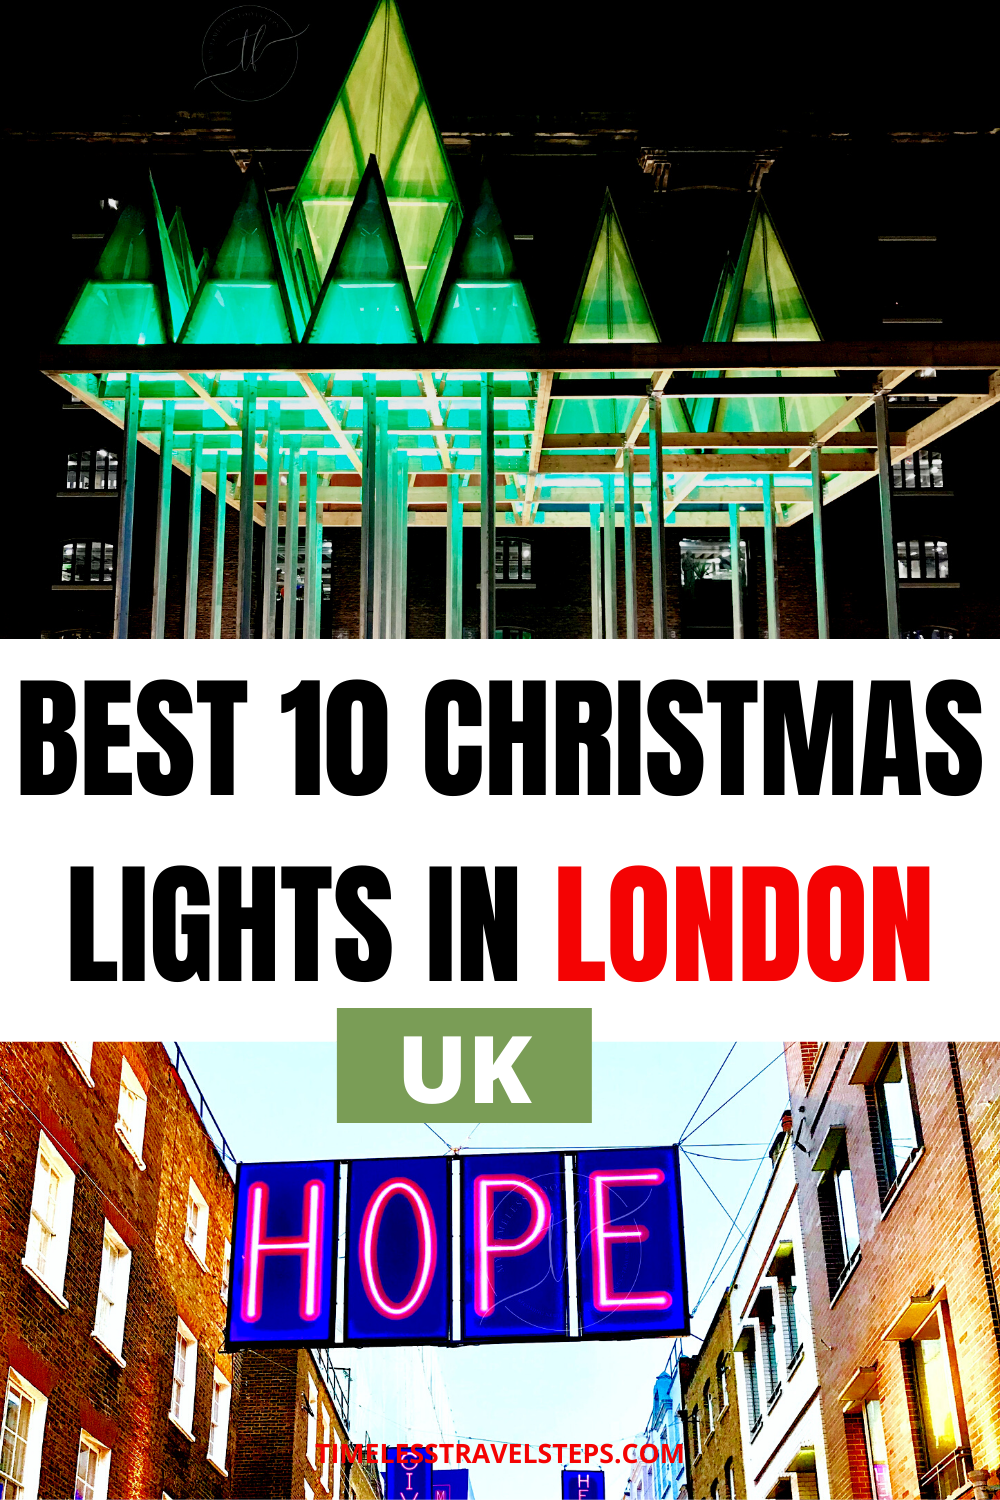 The Best of the Best Dazzling Christmas Lights in London to add to the festive cheer in this grand City | London at Christmas | Festive Lights in London | Christmas Lights | London City Guide | Where to See London Christmas Lights | Places for the best Christmas Lights via @GGeorgina_timelesstravelsteps/